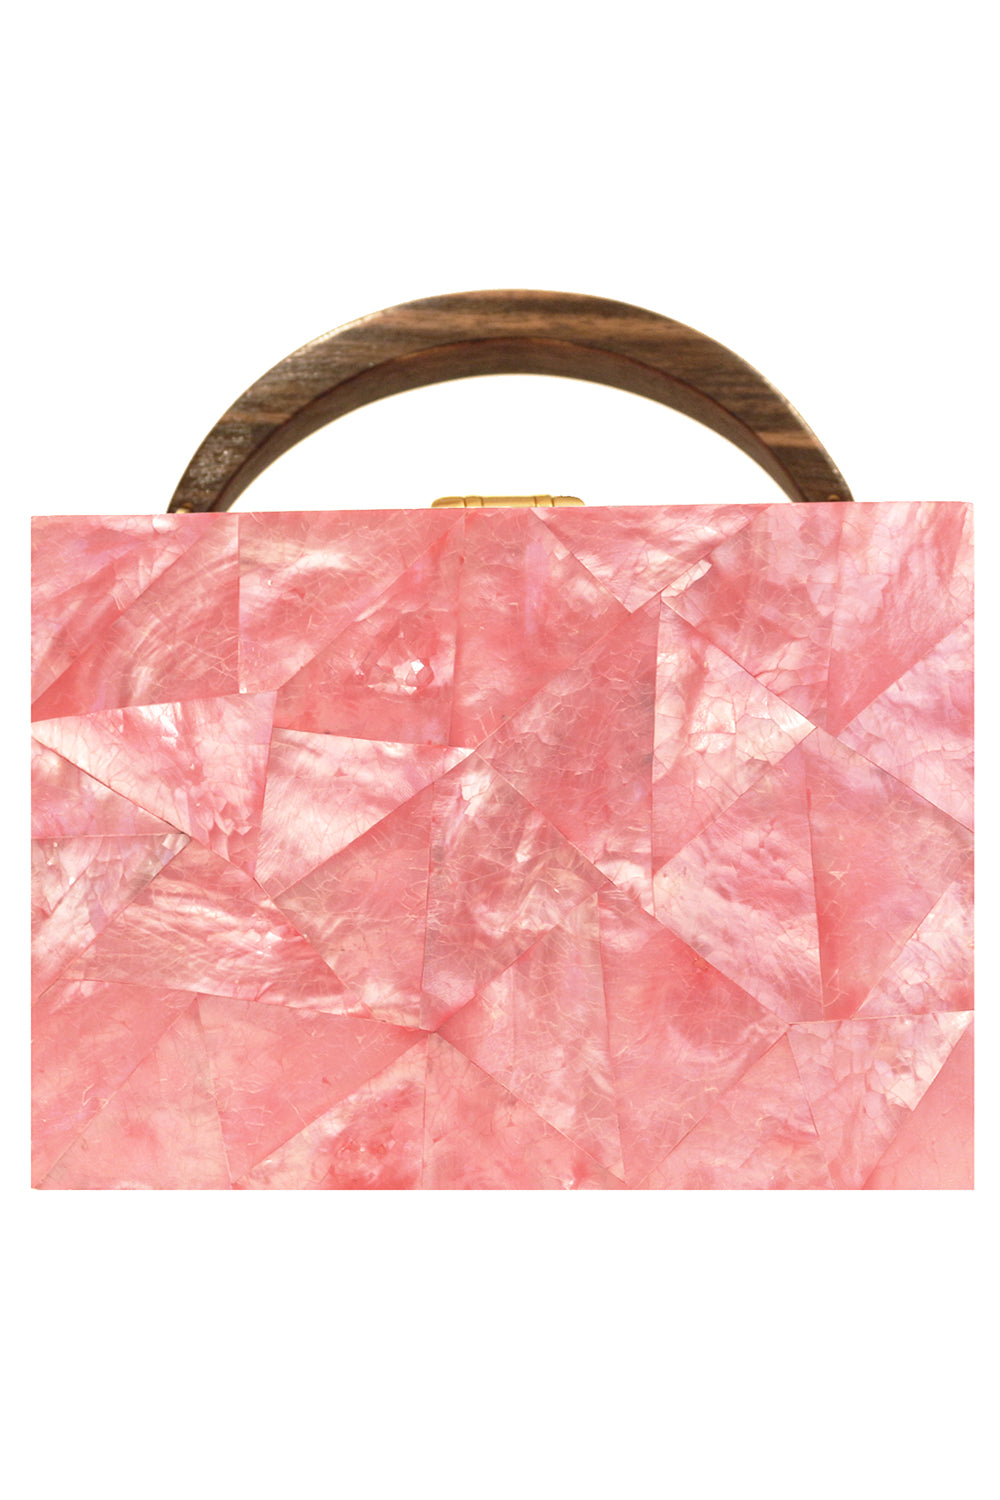 Lunch Box Clutch in Pink Mother of Pearl